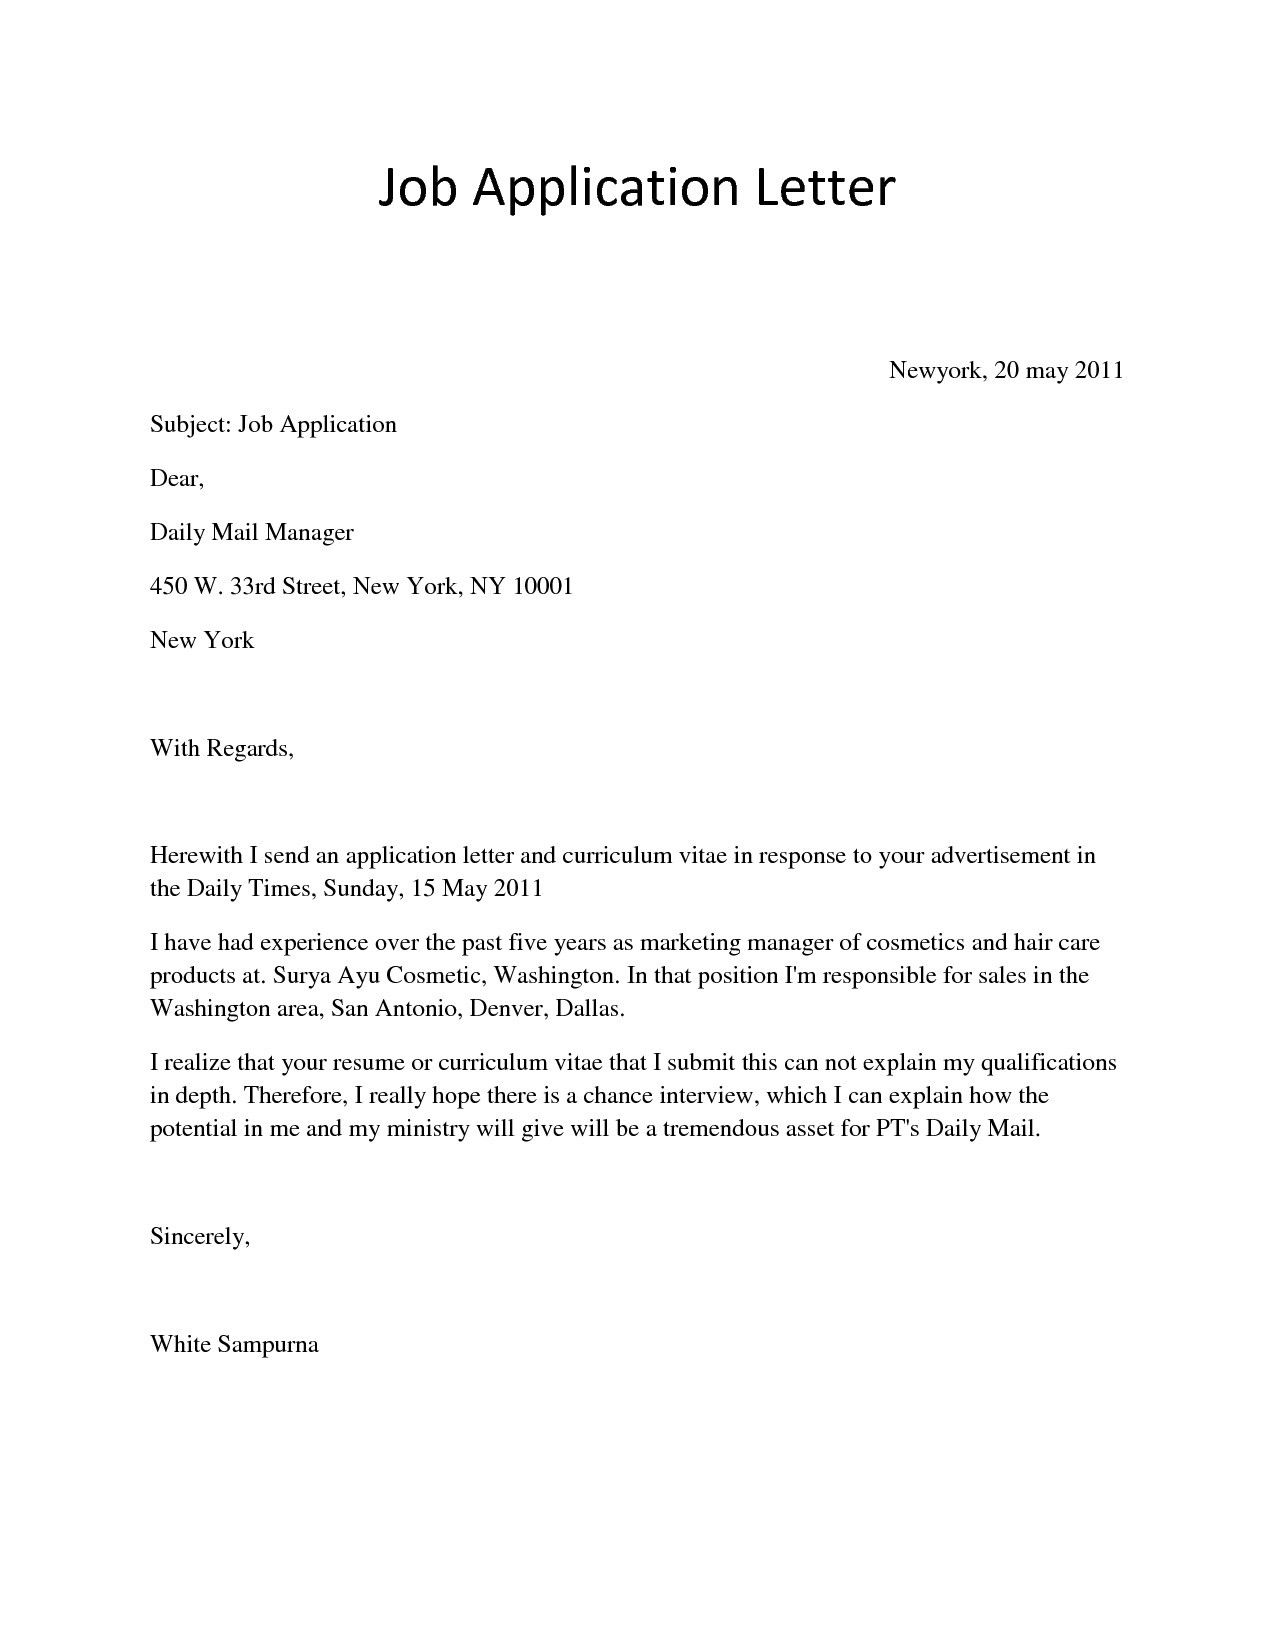 Cover Letter Template Ngo Simple Job Application Letter